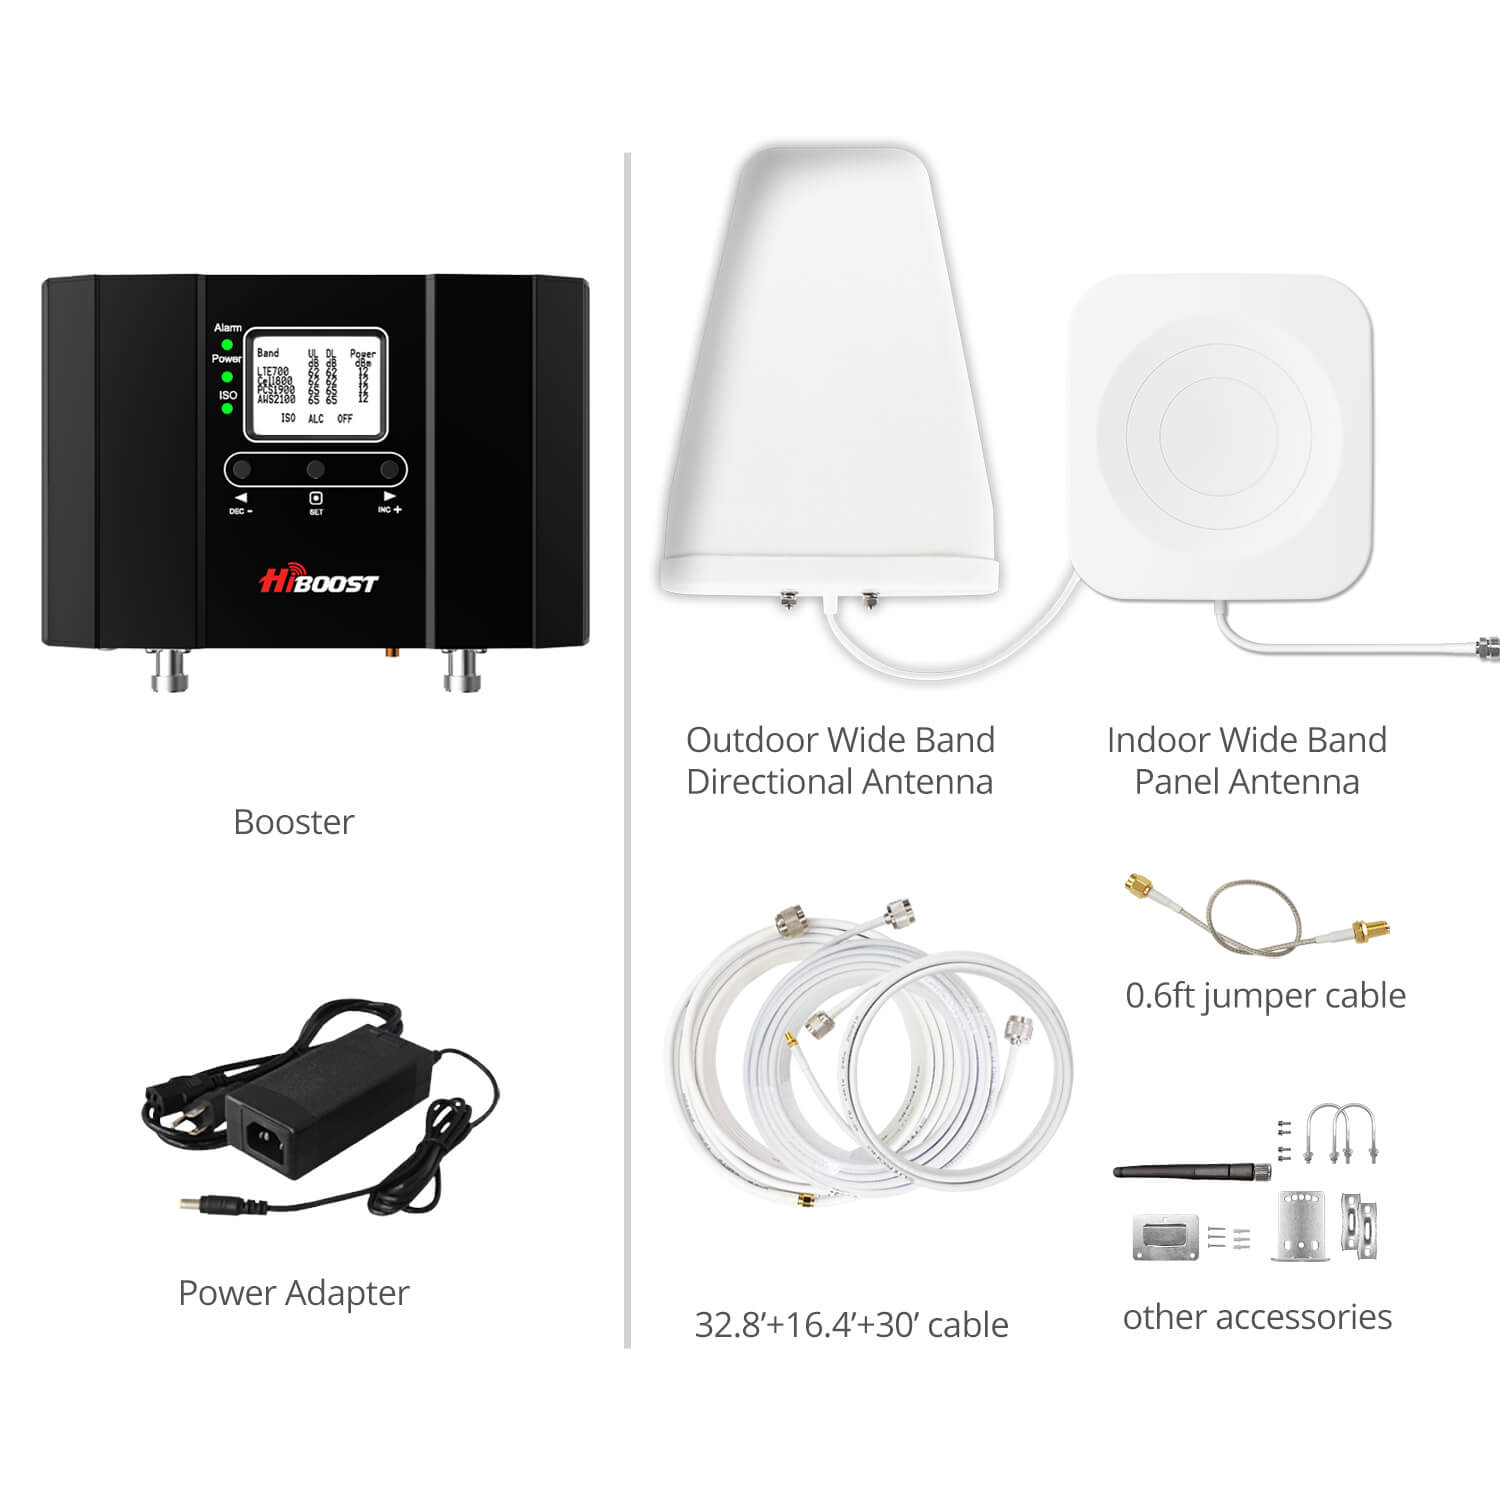 Hiboost-10k-Smart-Link-Cellular-Booster-6